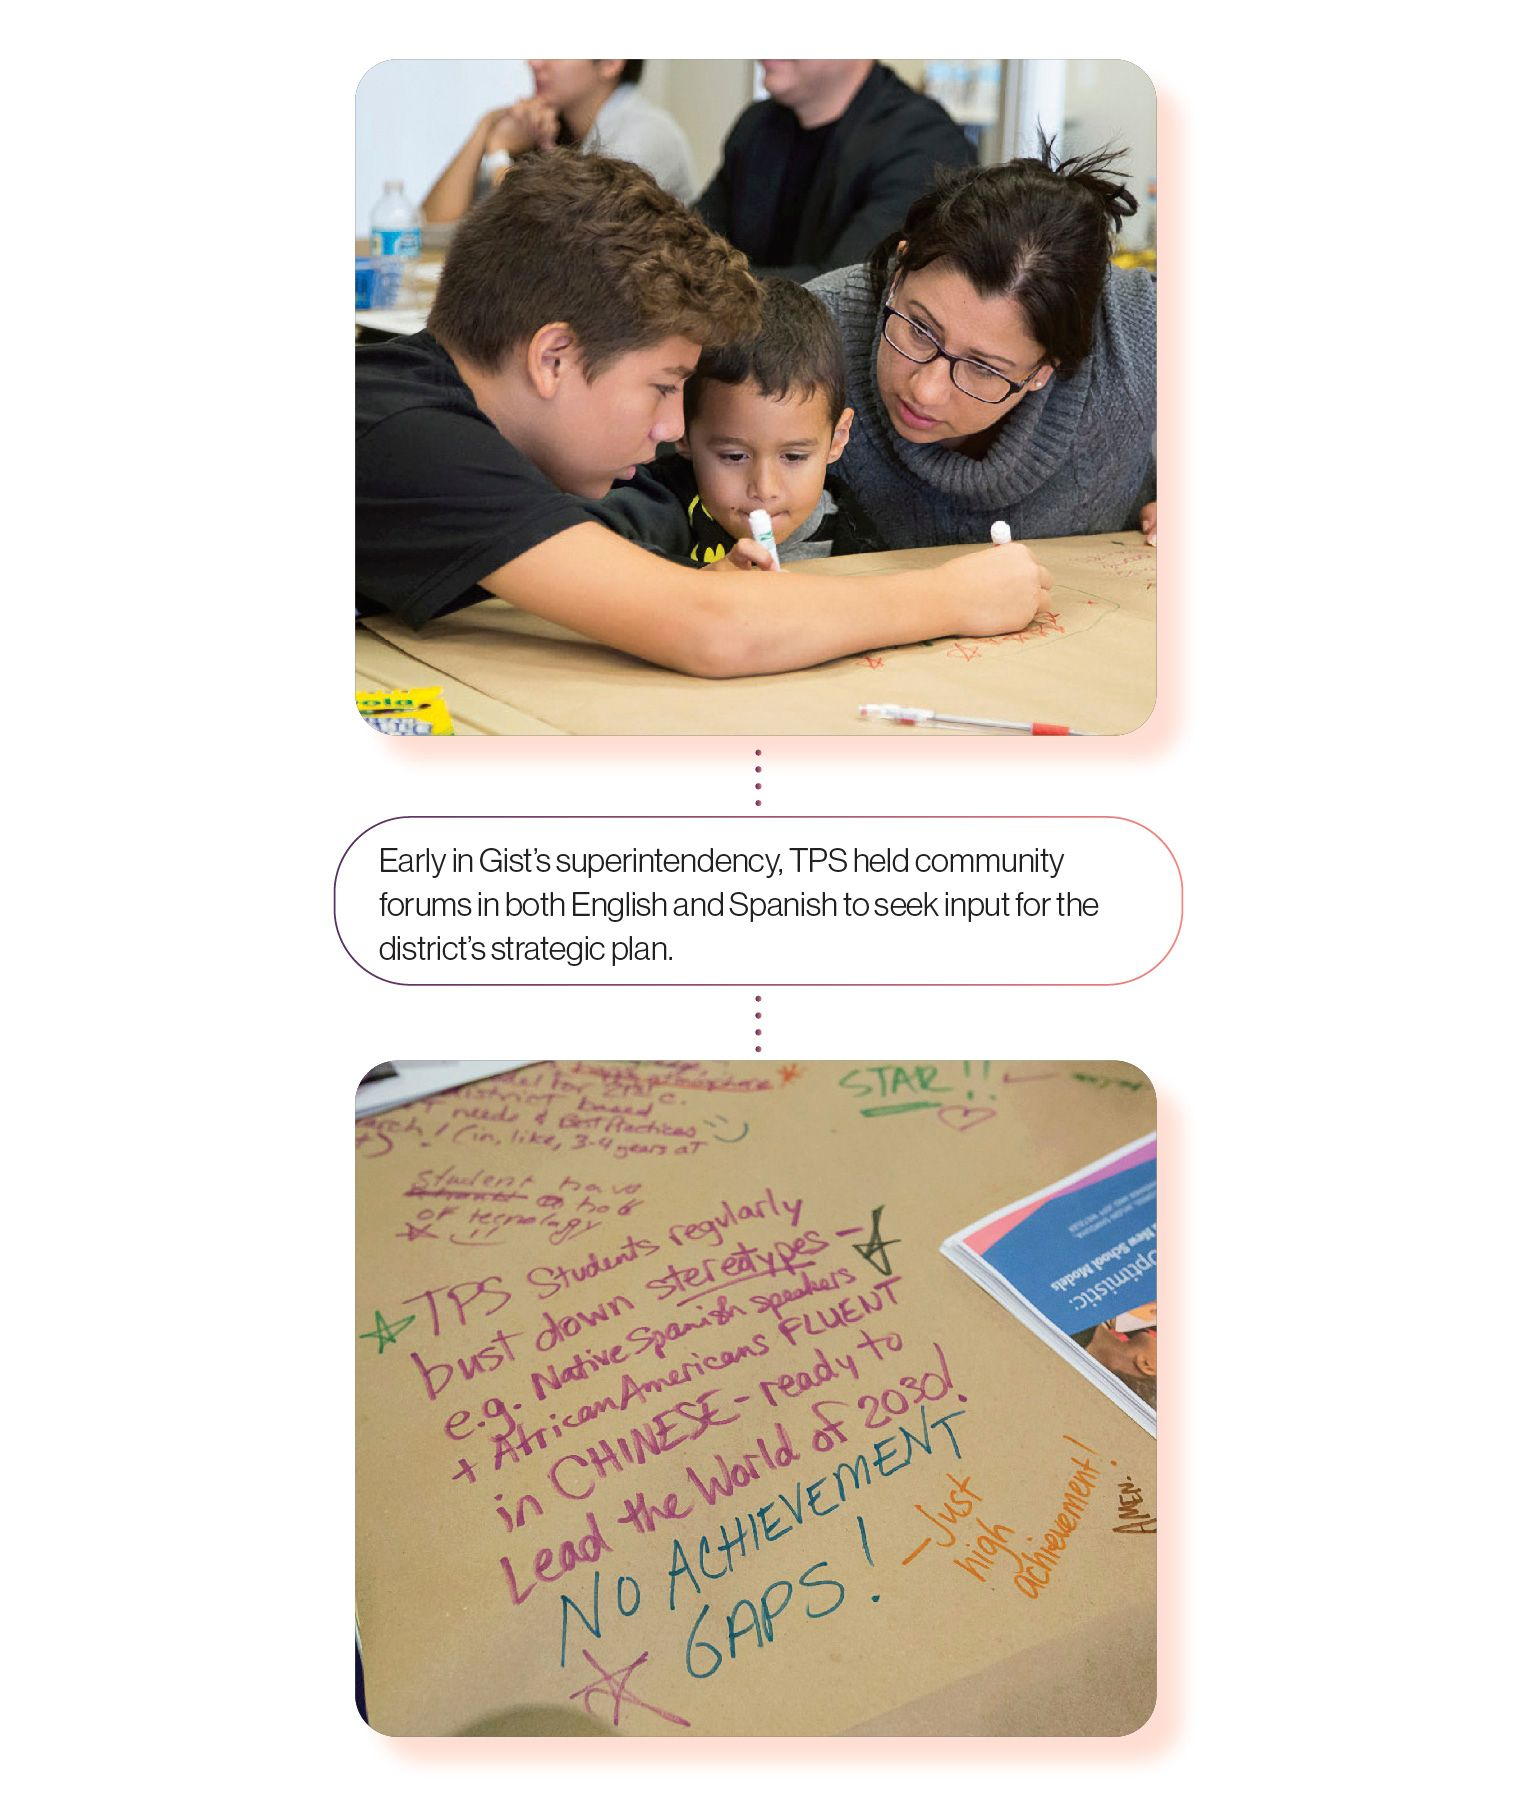 Images: Students and their teacher working on butcher paper for an open house, with the SchoolCEO caption 'Early in Gist's superintendency, TPS held community forums in both English and Spanish to seek input for the district's strategic plan.'